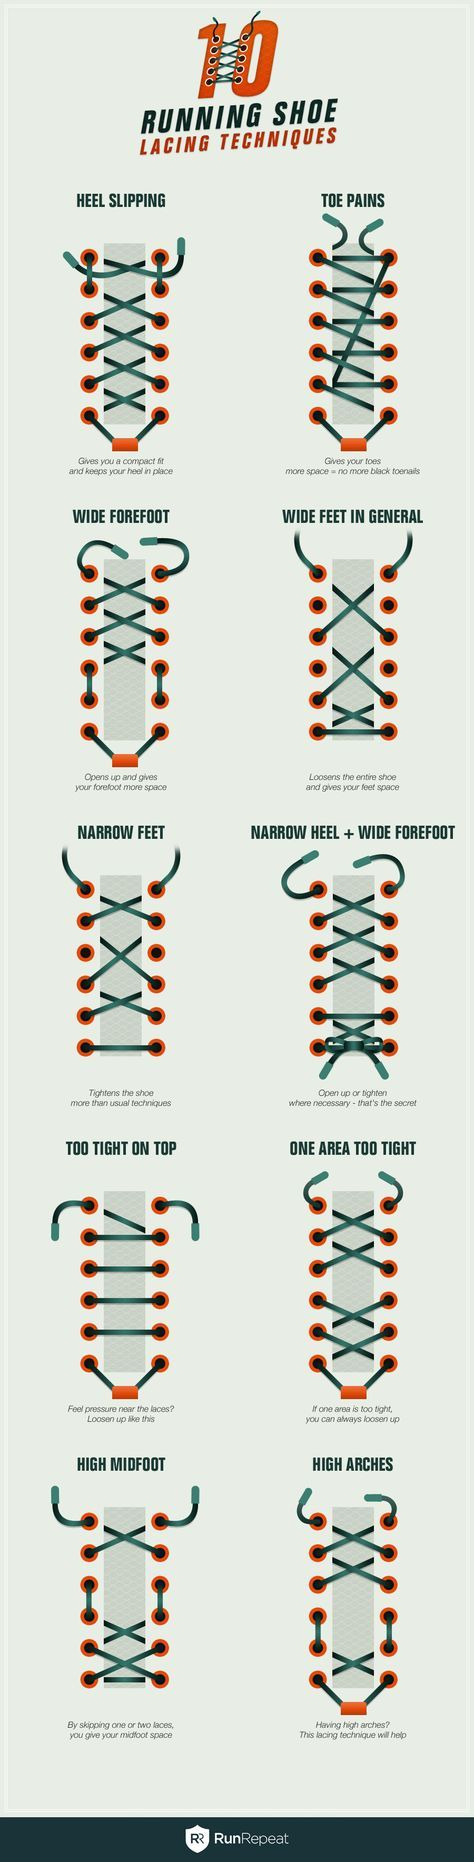 Top 10 Running Shoe Lacing Techniques